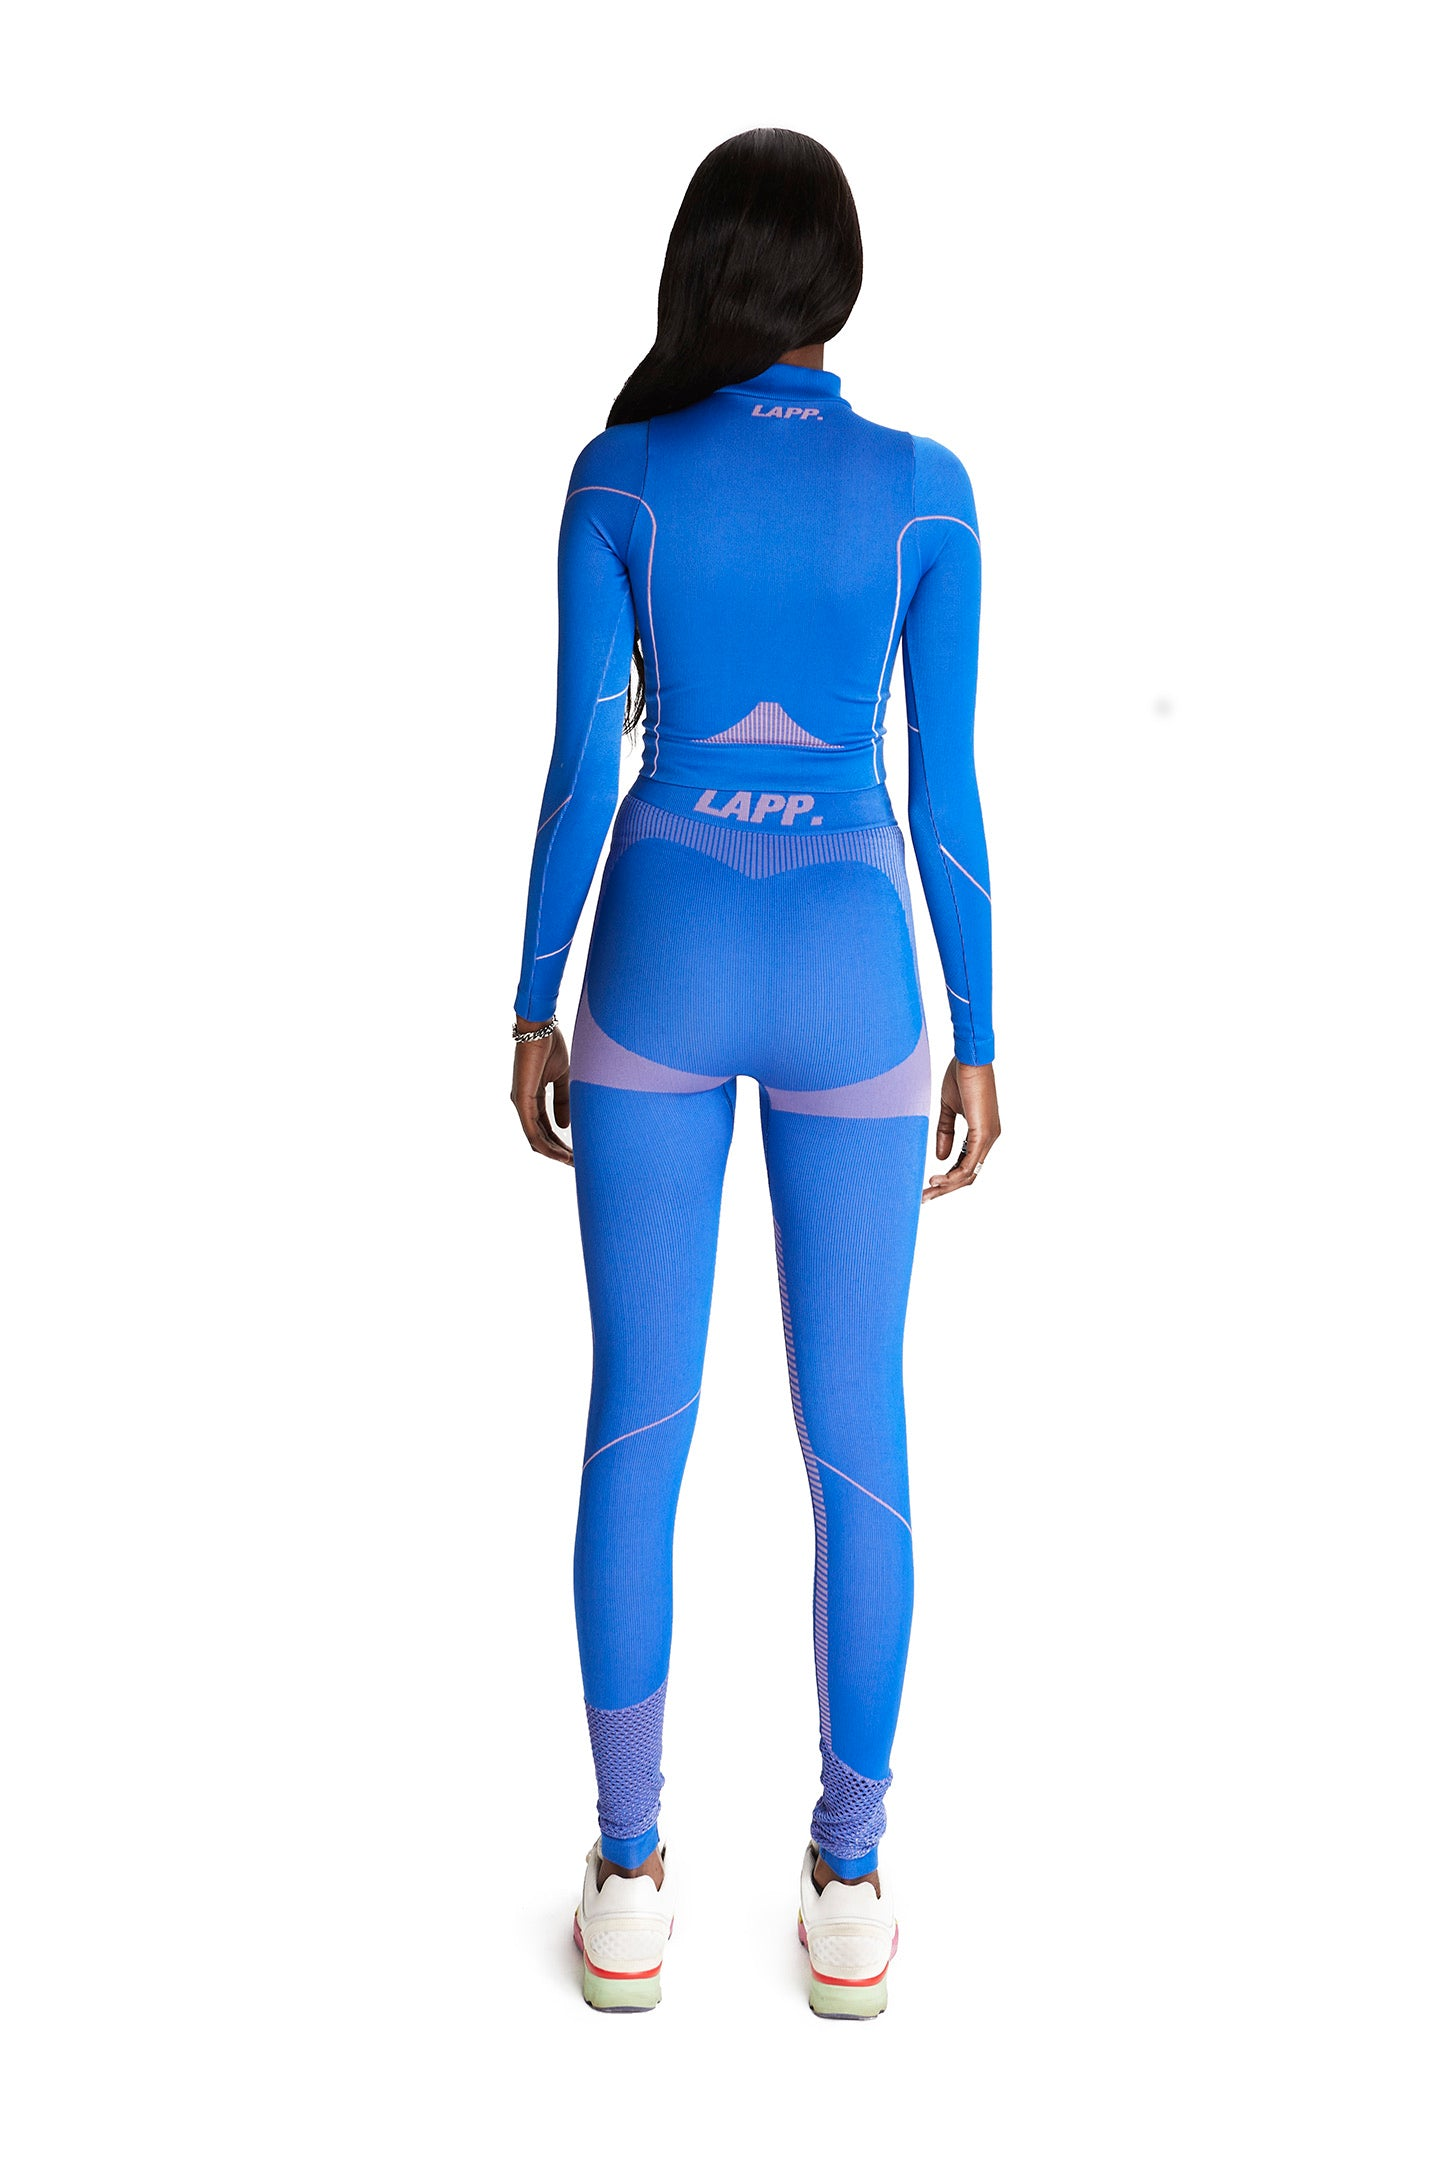 Seamless 1/2 zip jacket [3M/ Royal blue]